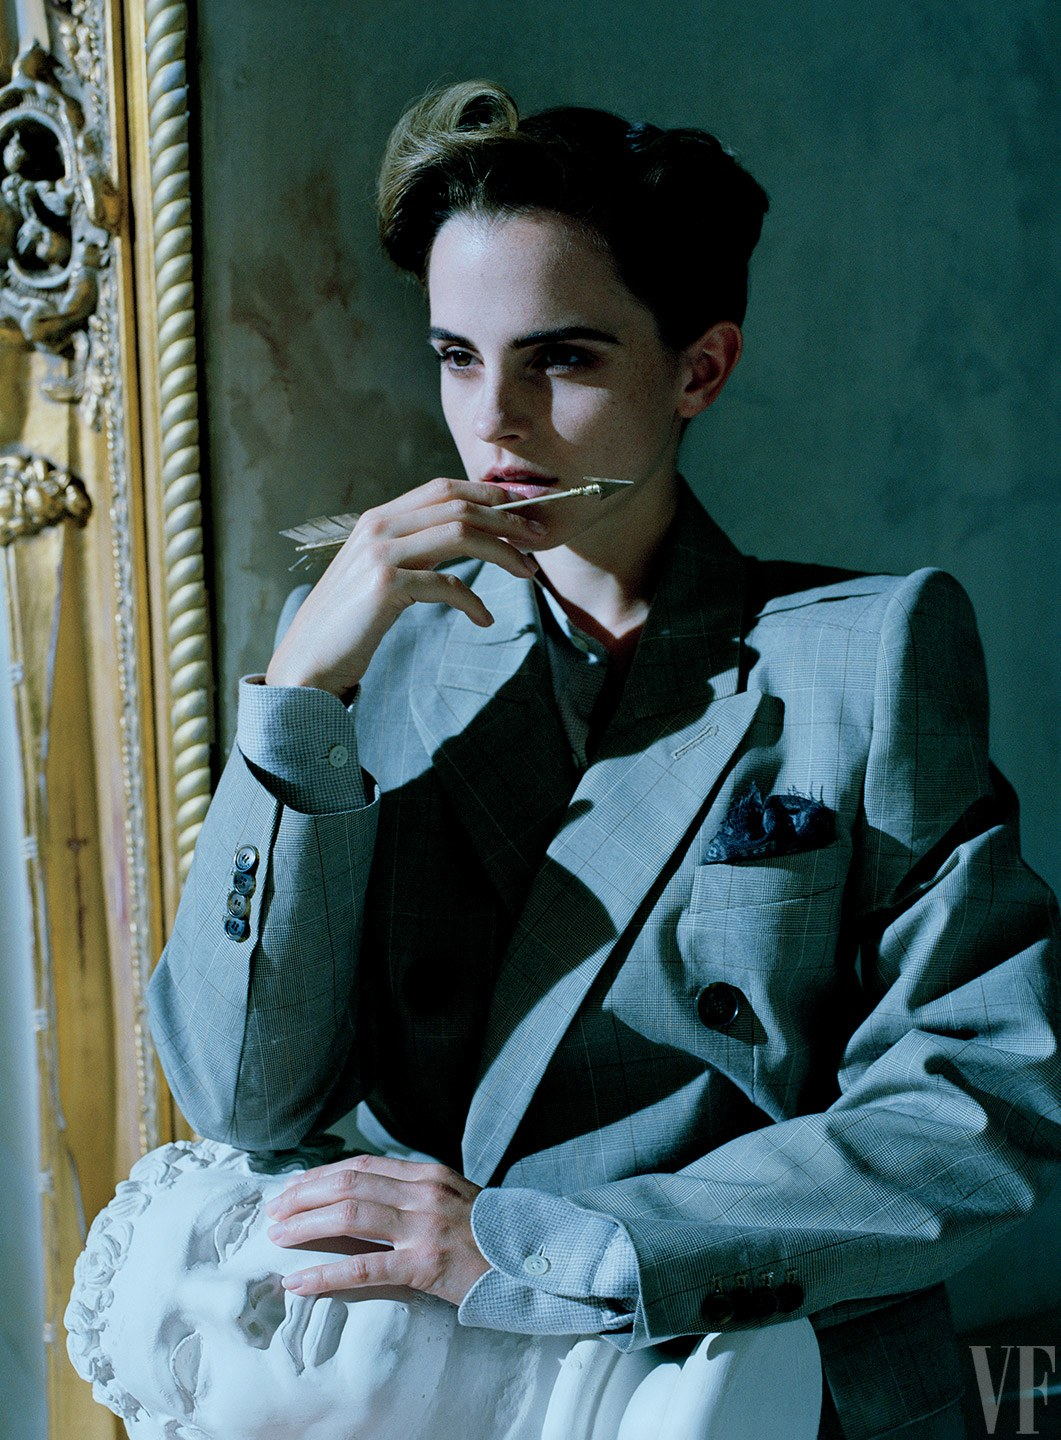 Emma Watson in a jacket by Balenciaga; shirt and pocket-square by Anderson & Sheppard.